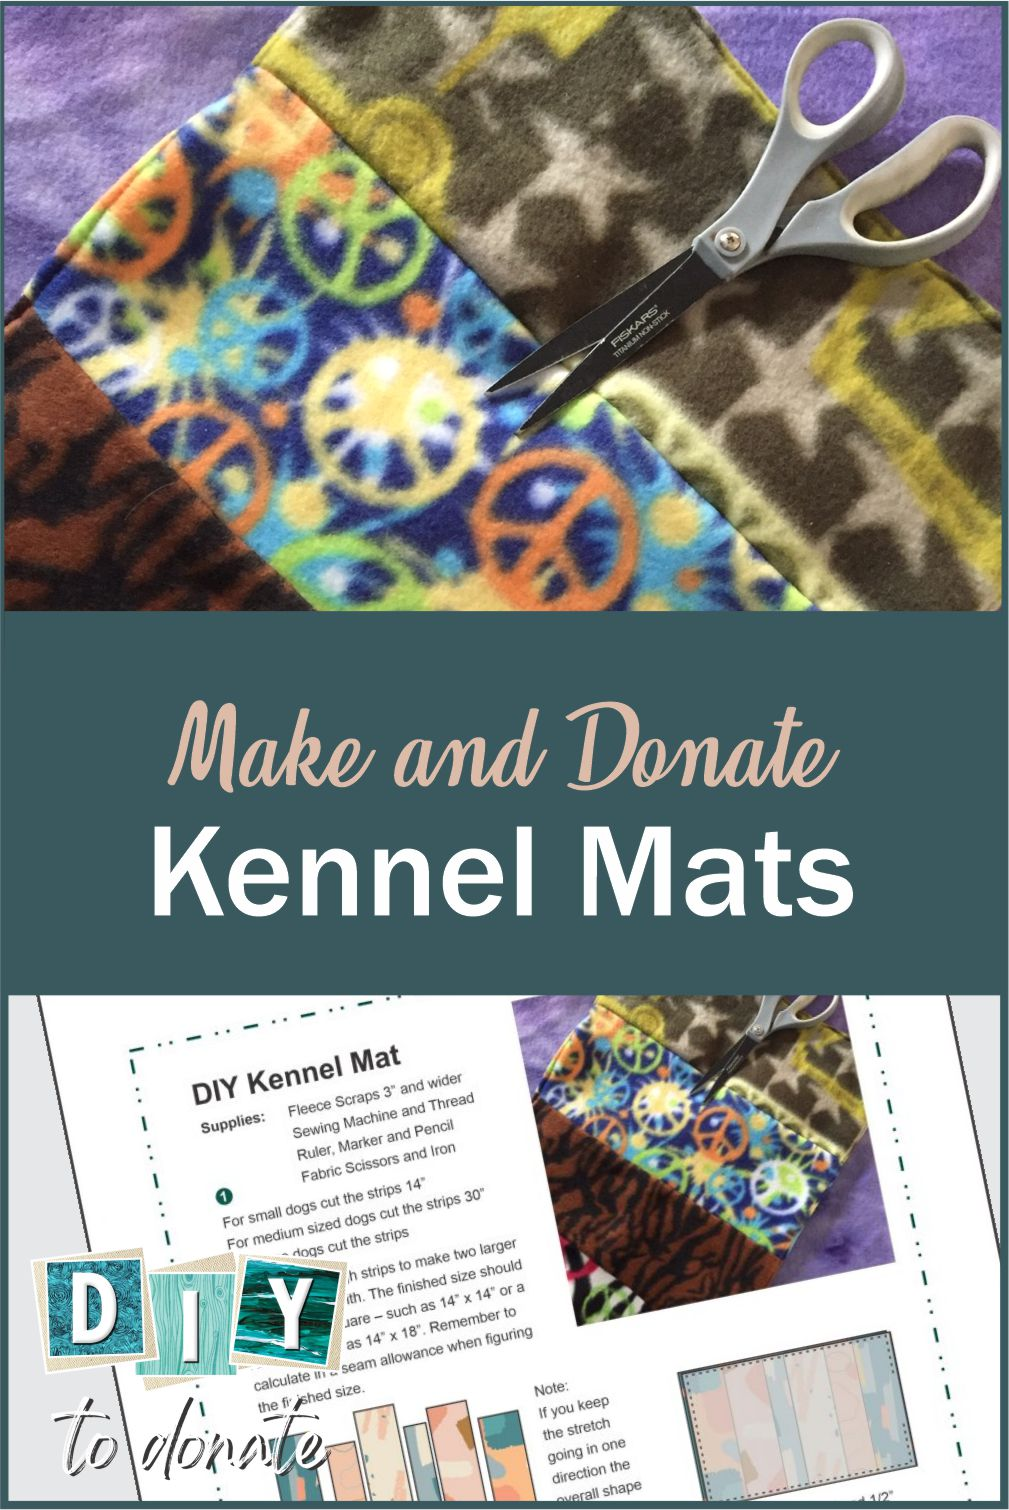 Round up fleece scraps and make kennel mats for animal shelters. They are easy to make for beginner sewers and will cost you nothing to make. #diytodonate #diy #donate #animalshelters #shelters #animals #pets #sewing #communityservice #community